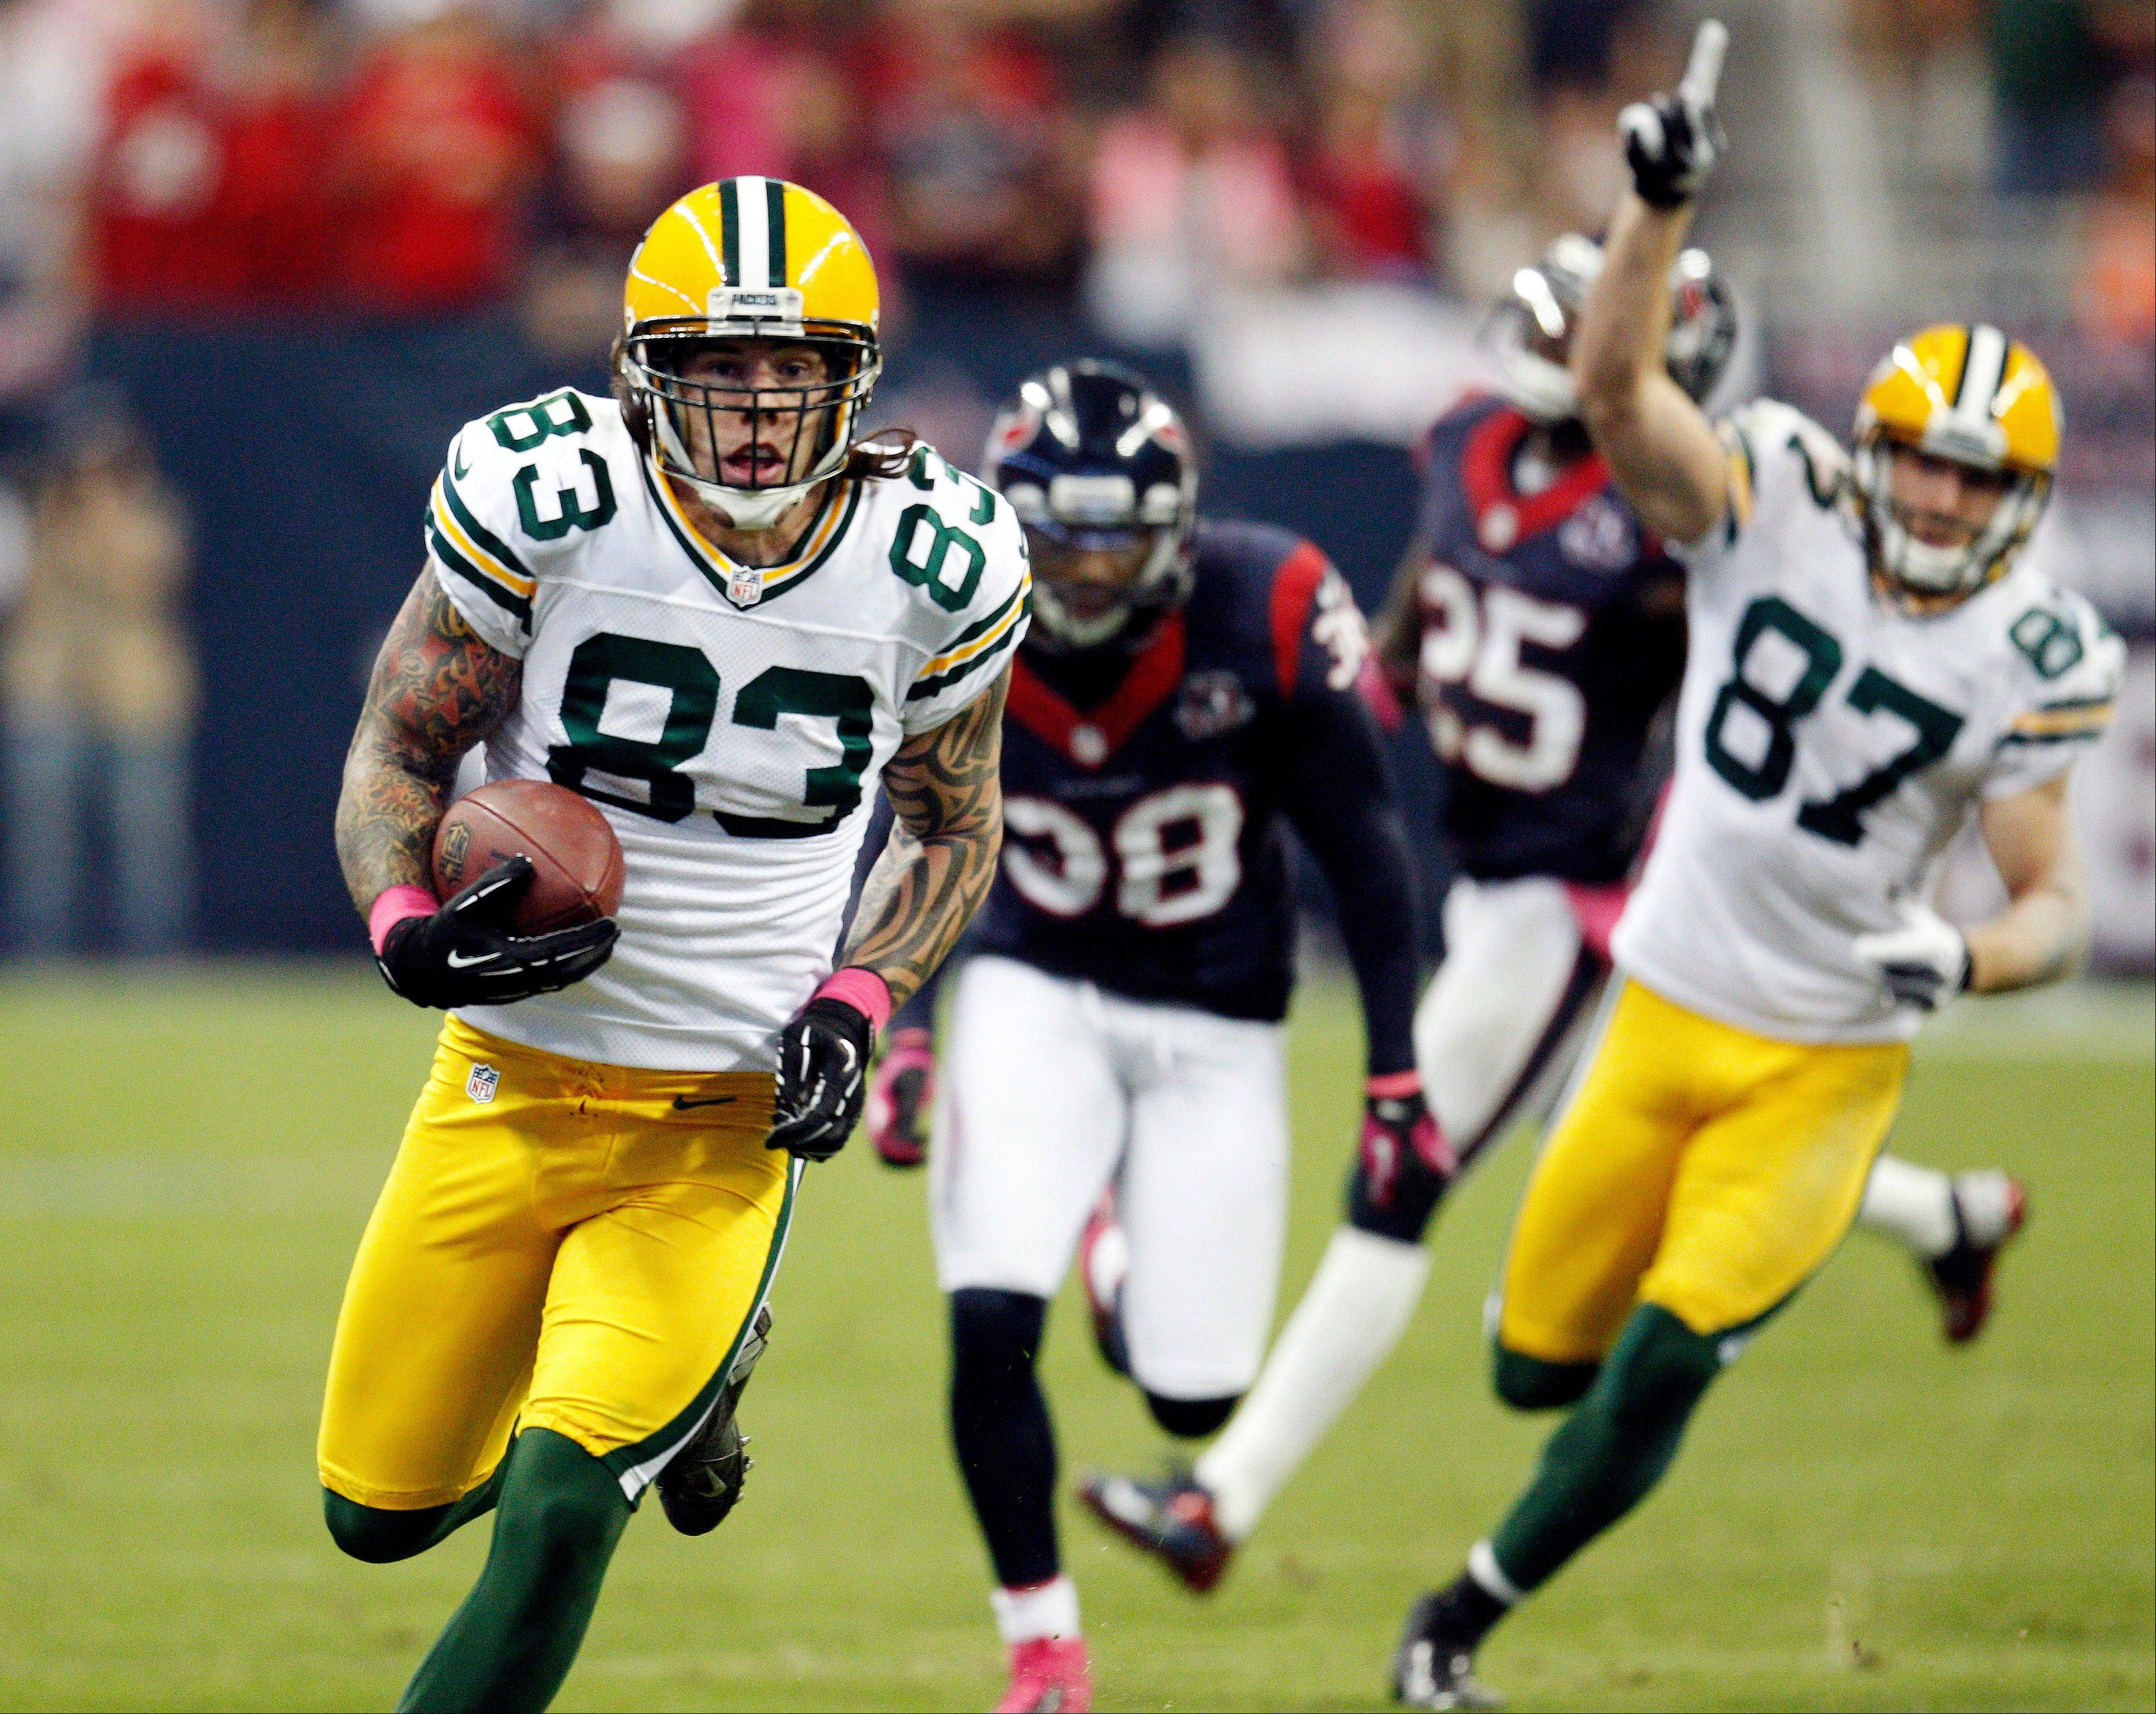 Green Bay Packers' Tom Crabtree makes a 48-yard touchdown reception against the Houston Texans during the fourth quarter Sunday in Houston. The Packers won 42-24.